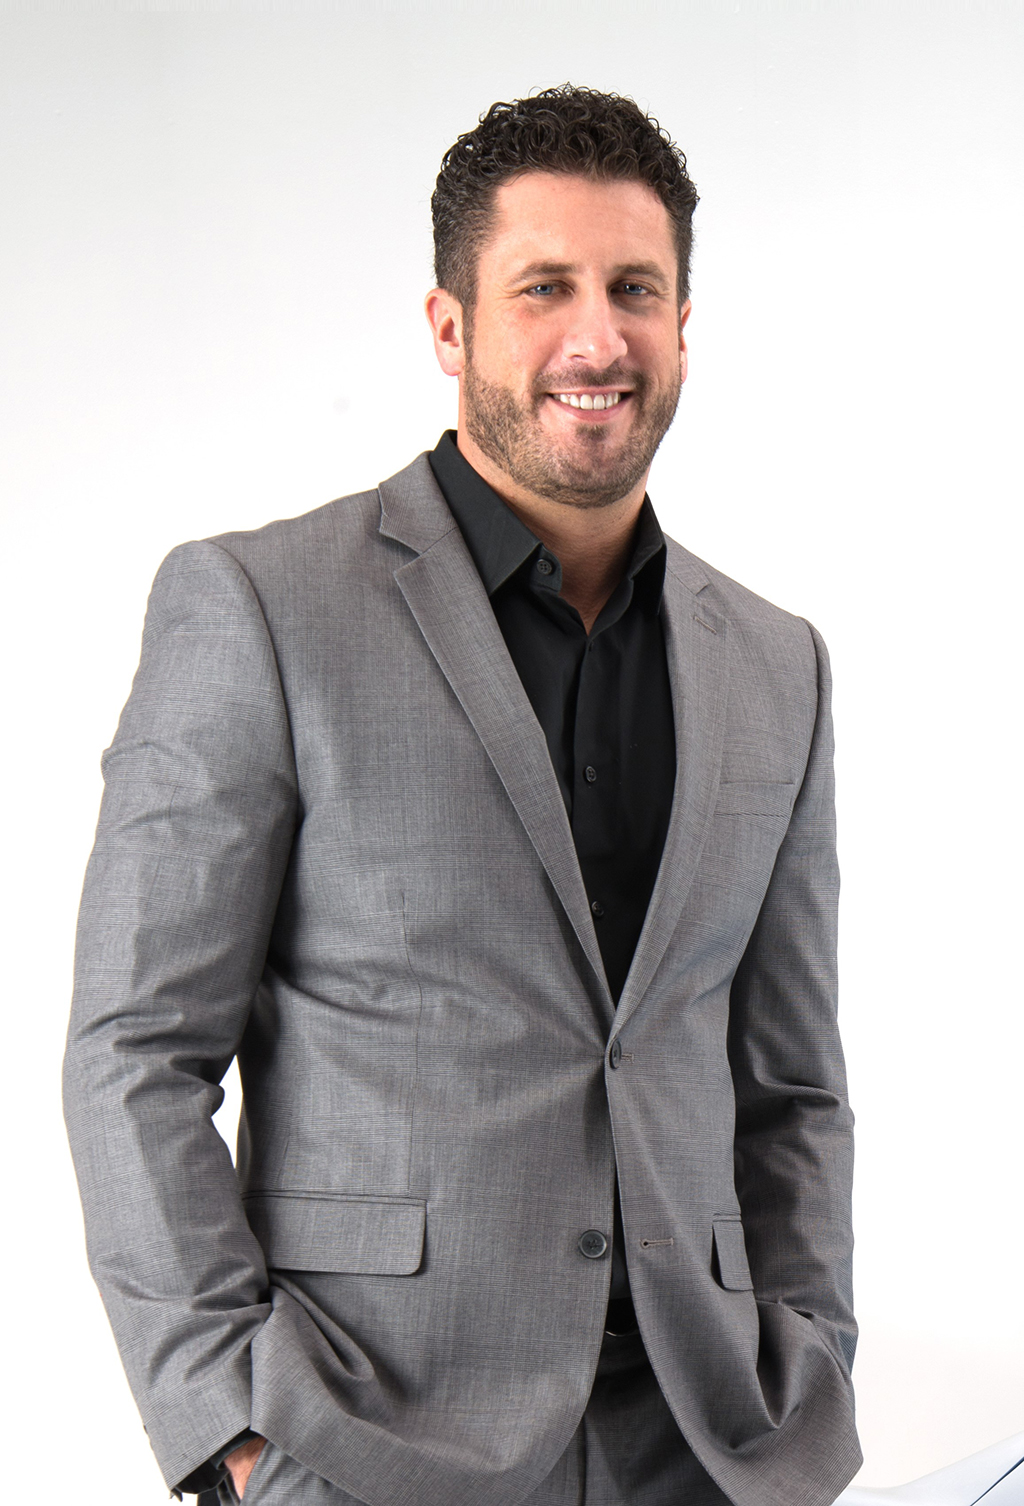 Barrett-Jackson Executive Vice President and General Manager Nick Cardinale